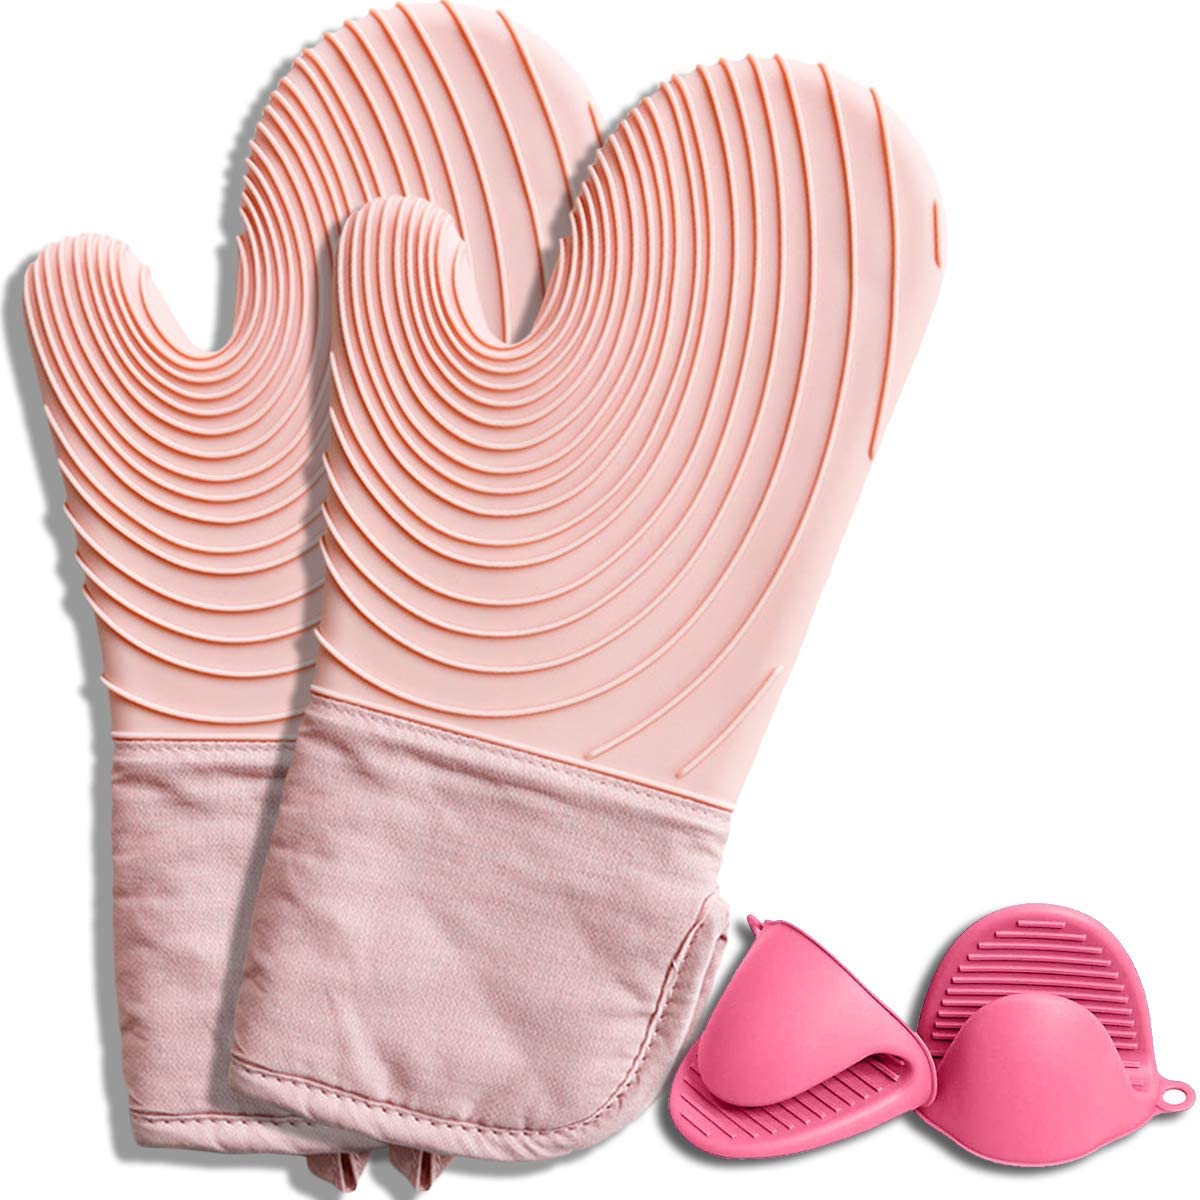 Oven Mitts and Pot Holder,Profession Extra Long Silicone Oven Mitt,Instant Heat Resistance 575℉ with Two Pinch Hand Clips,Food Safe Waterproof Oven Mitts,Inner Cotton Layer for Cooking,Baking (Pink)